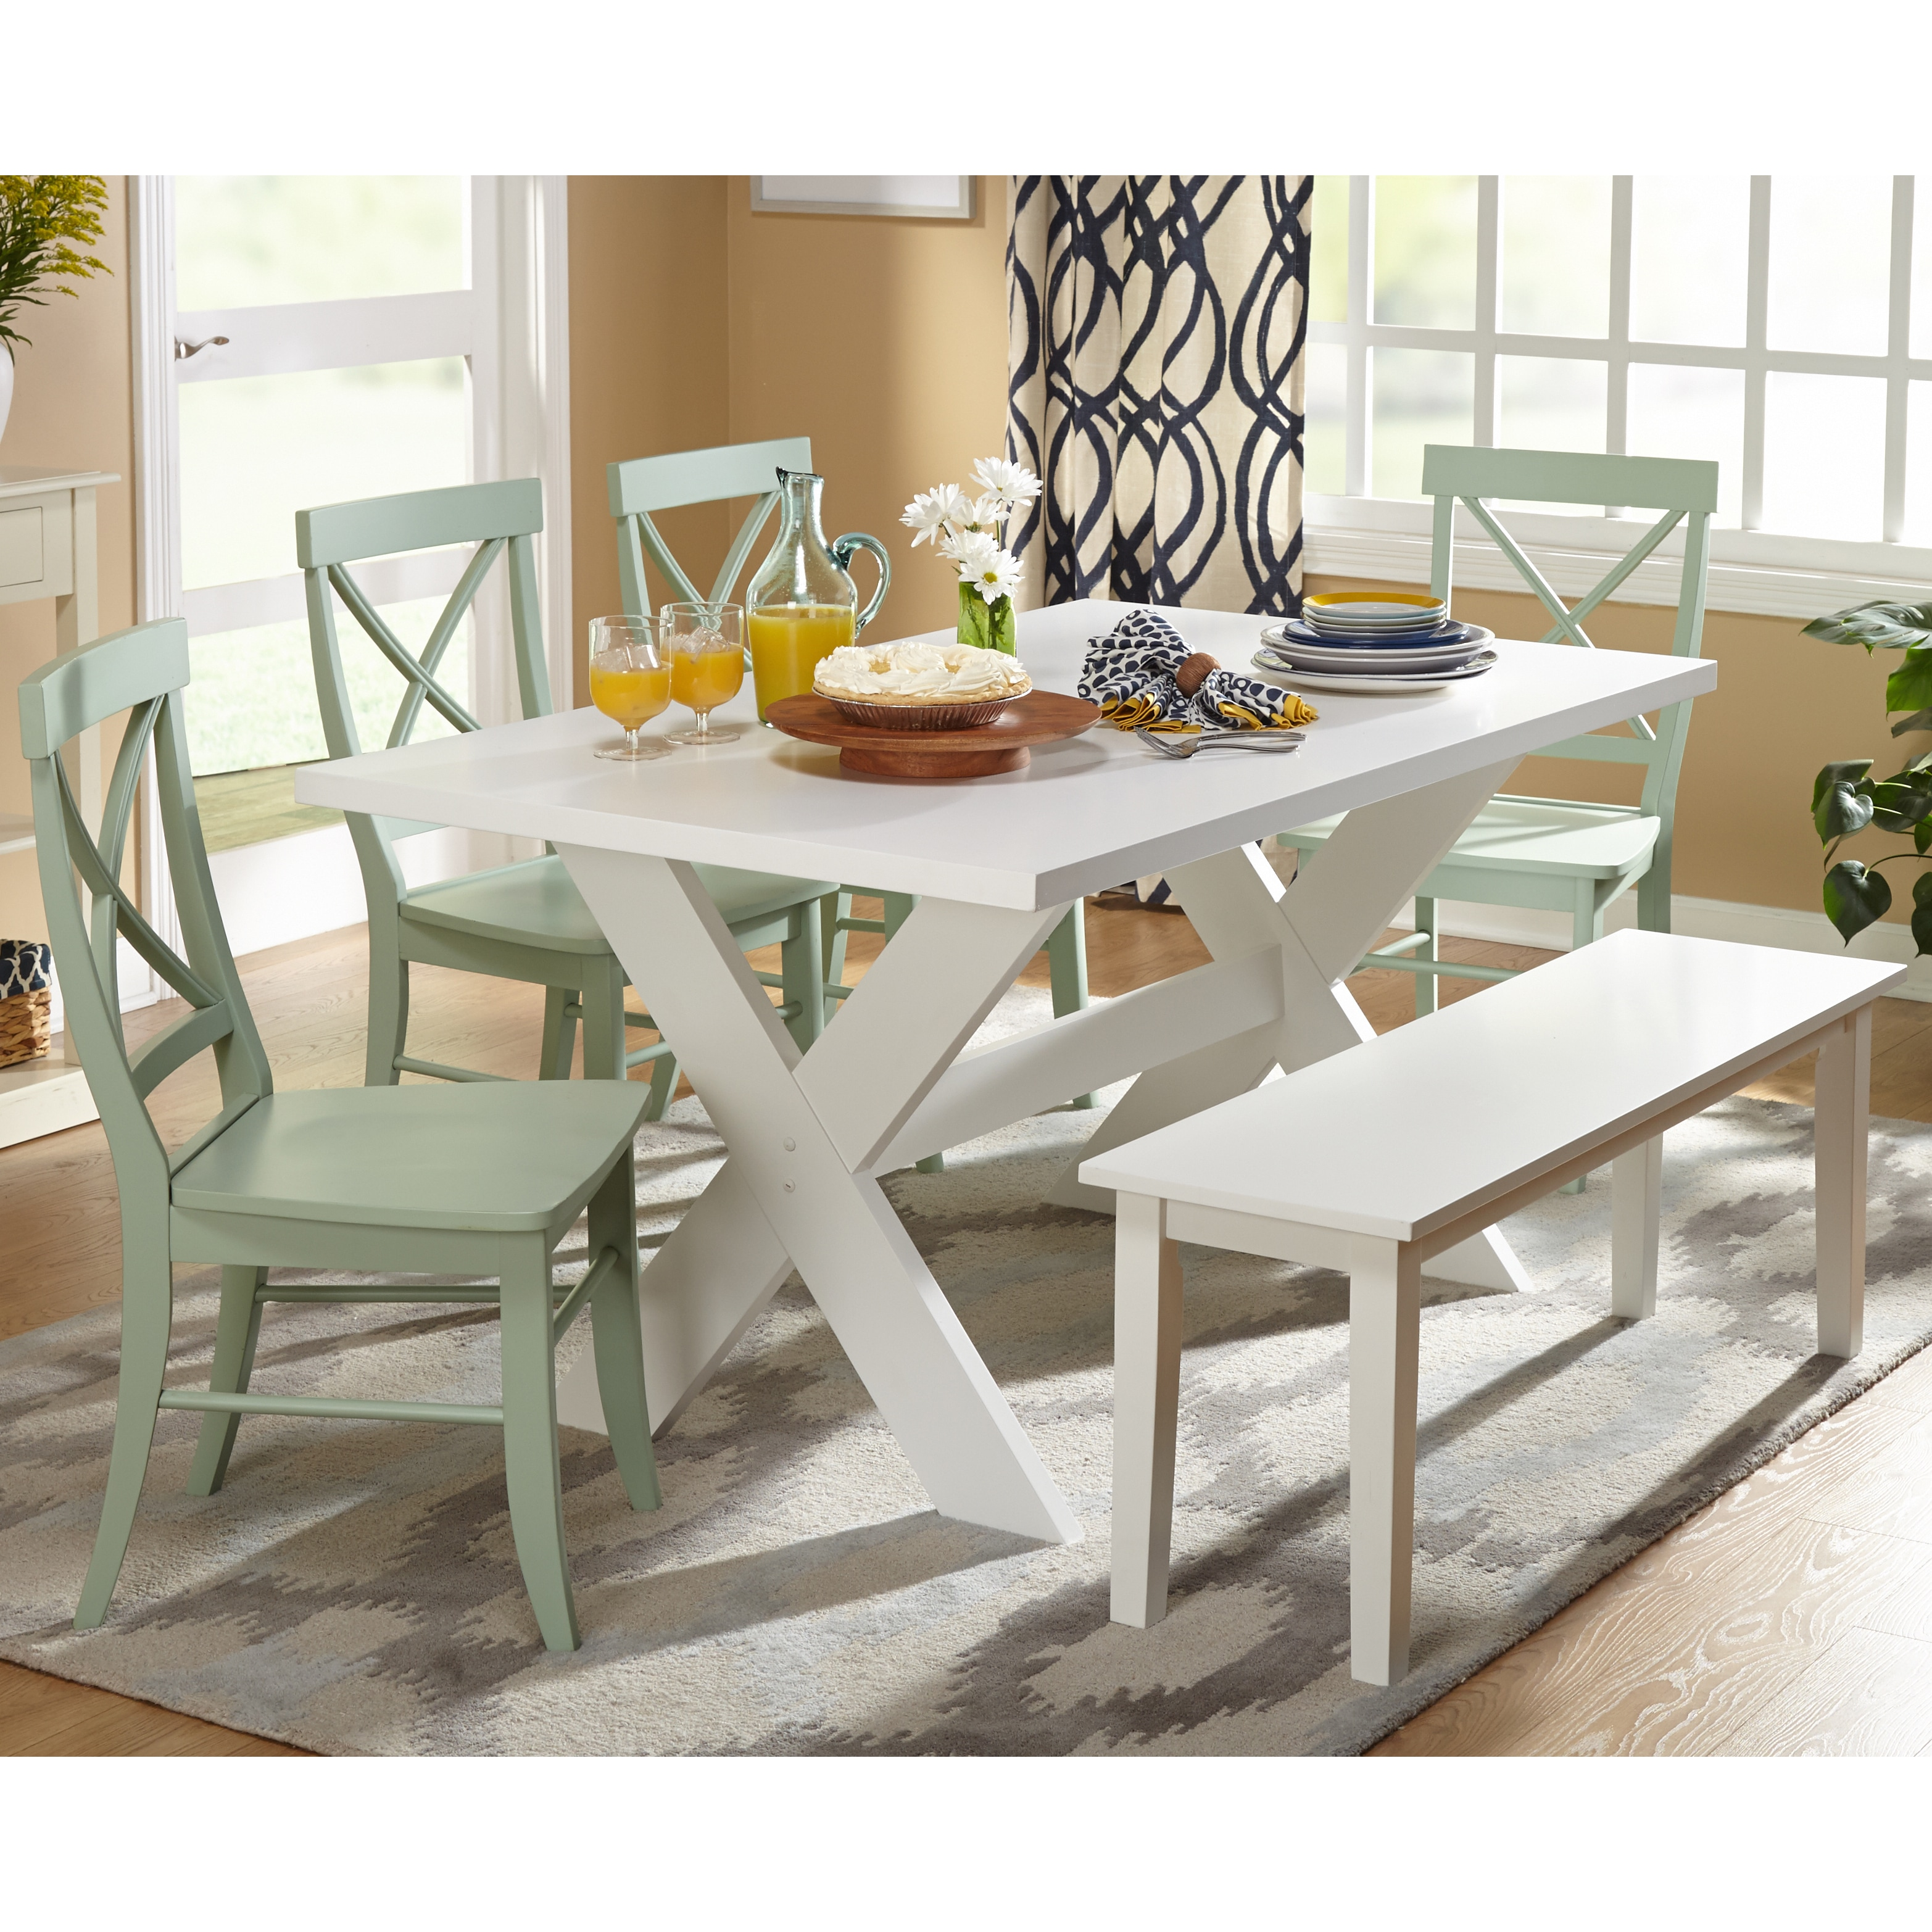 Dining Sets With Benches Walmartcom